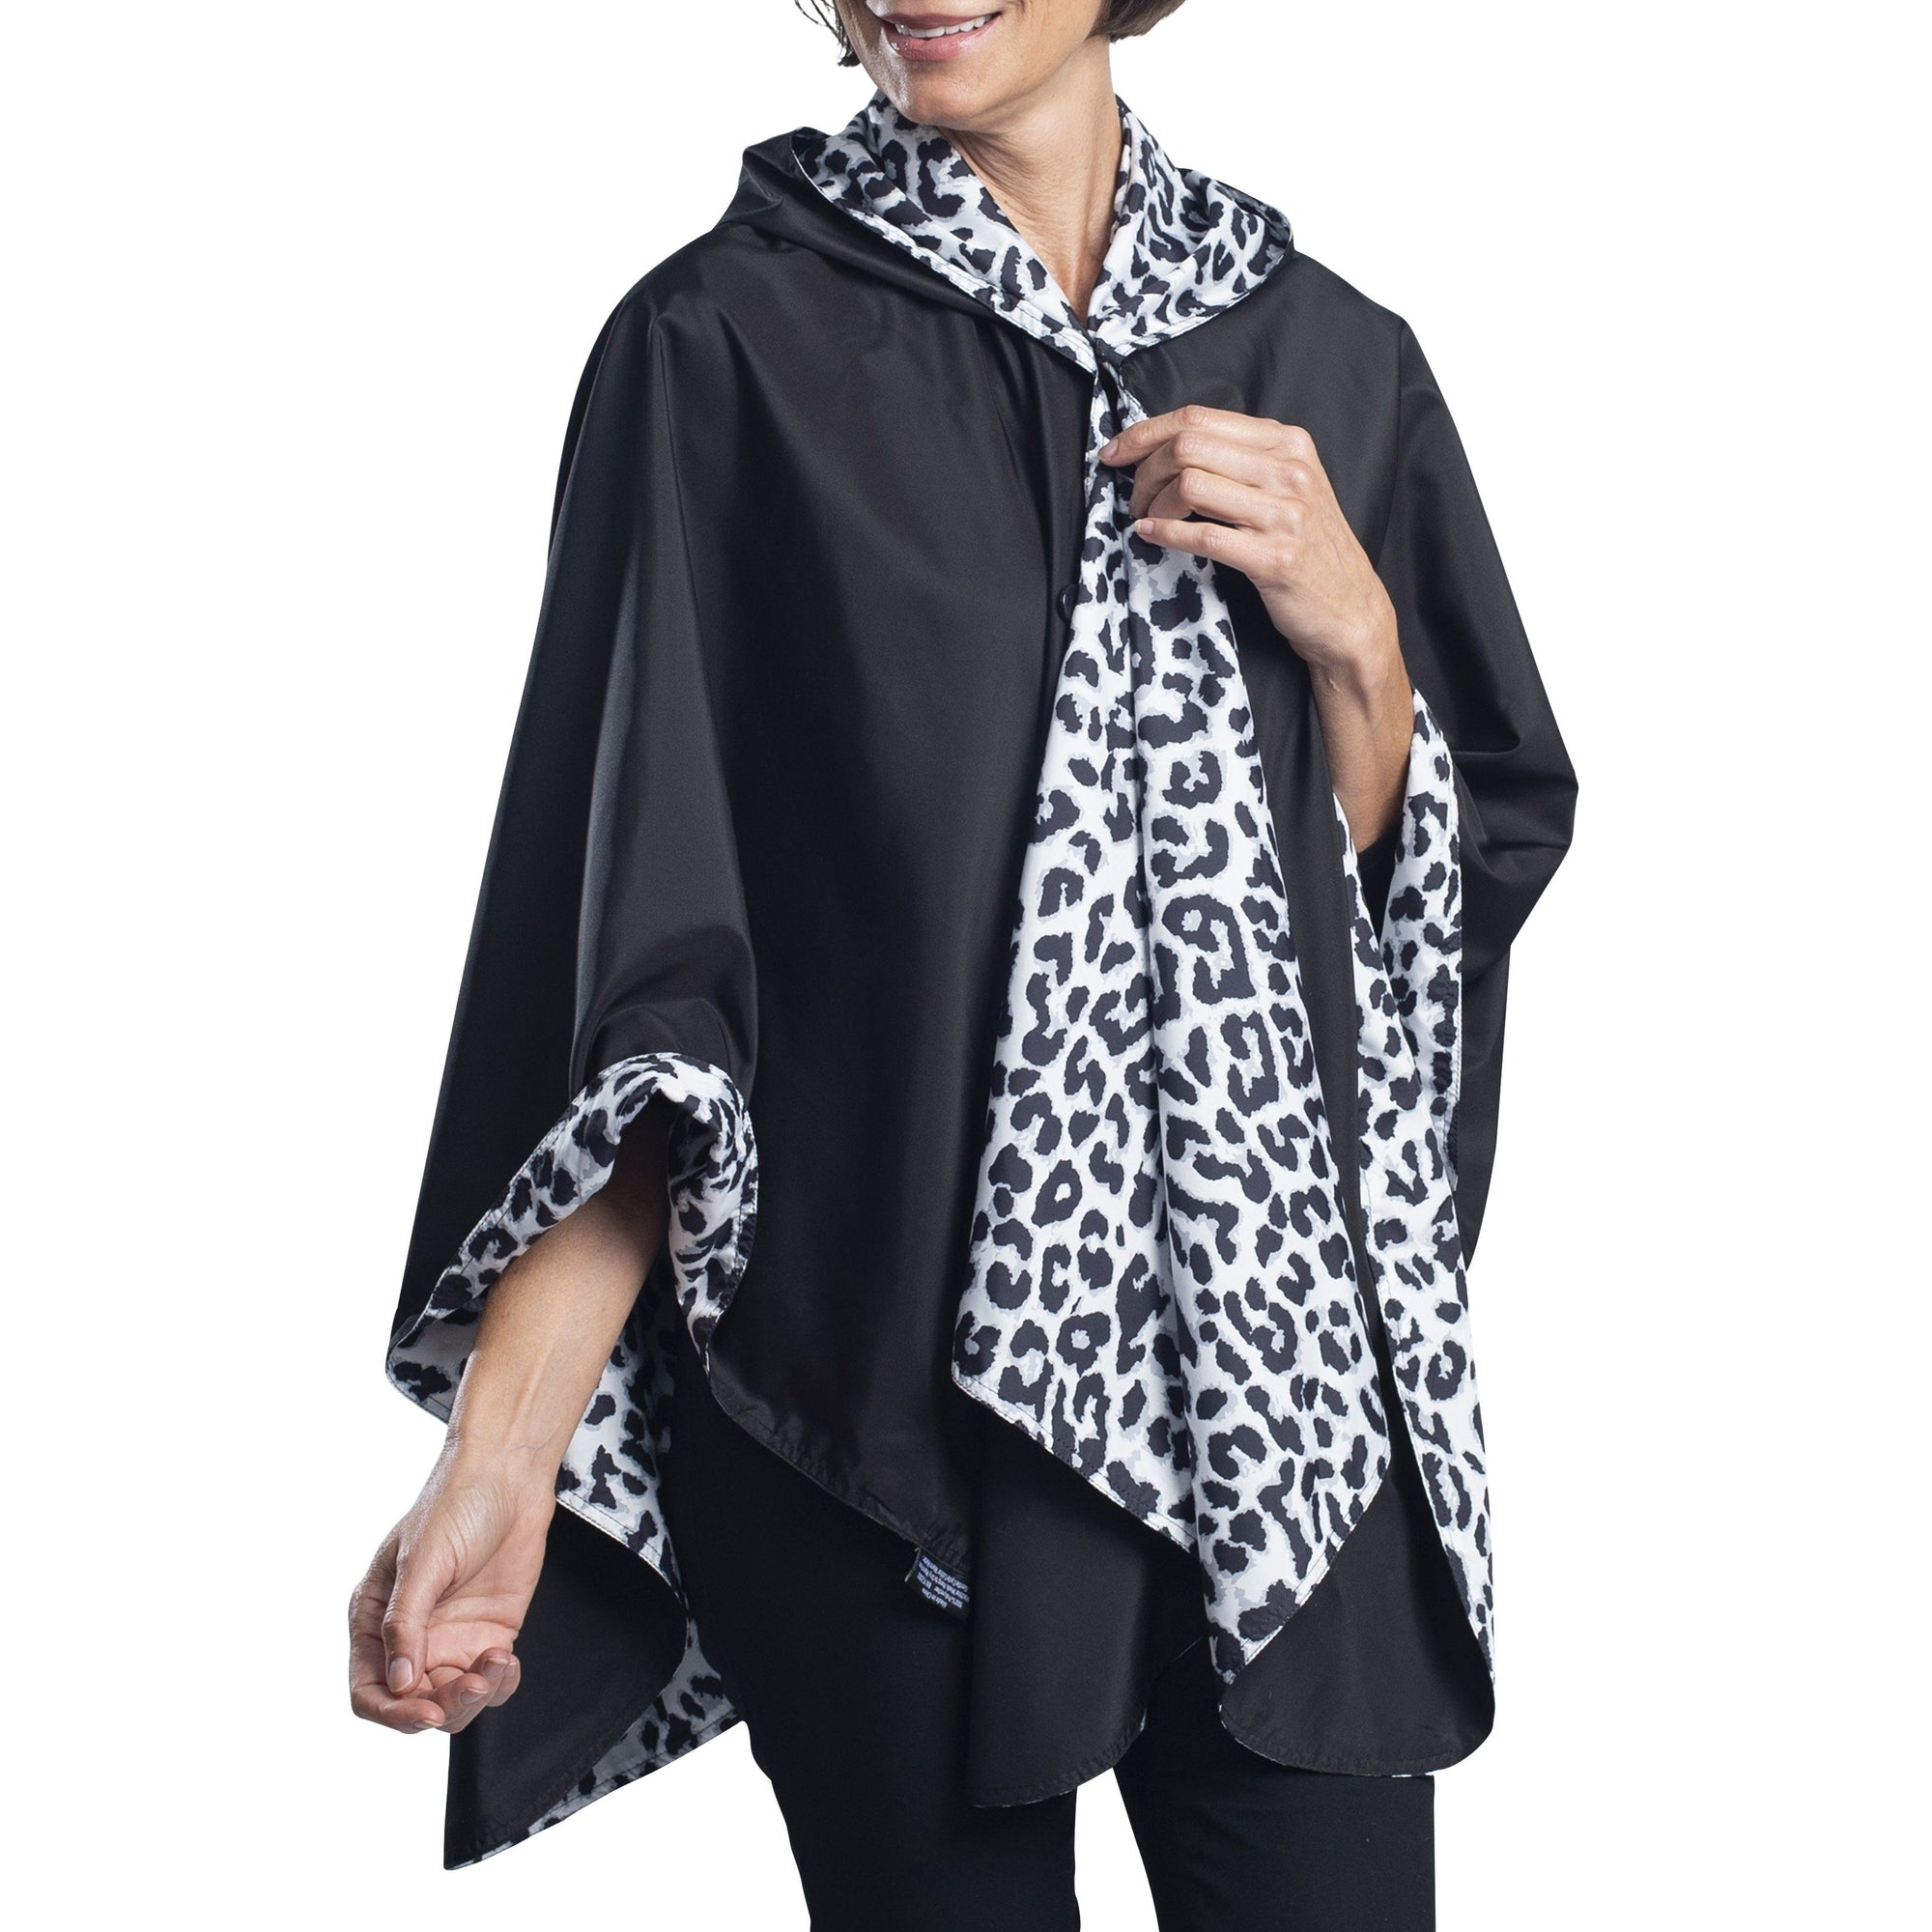 Women wearing a Black and White Animal Print RainCaper travel cape with the Black side out, revealing the White Animal print at the lapels and cuffs